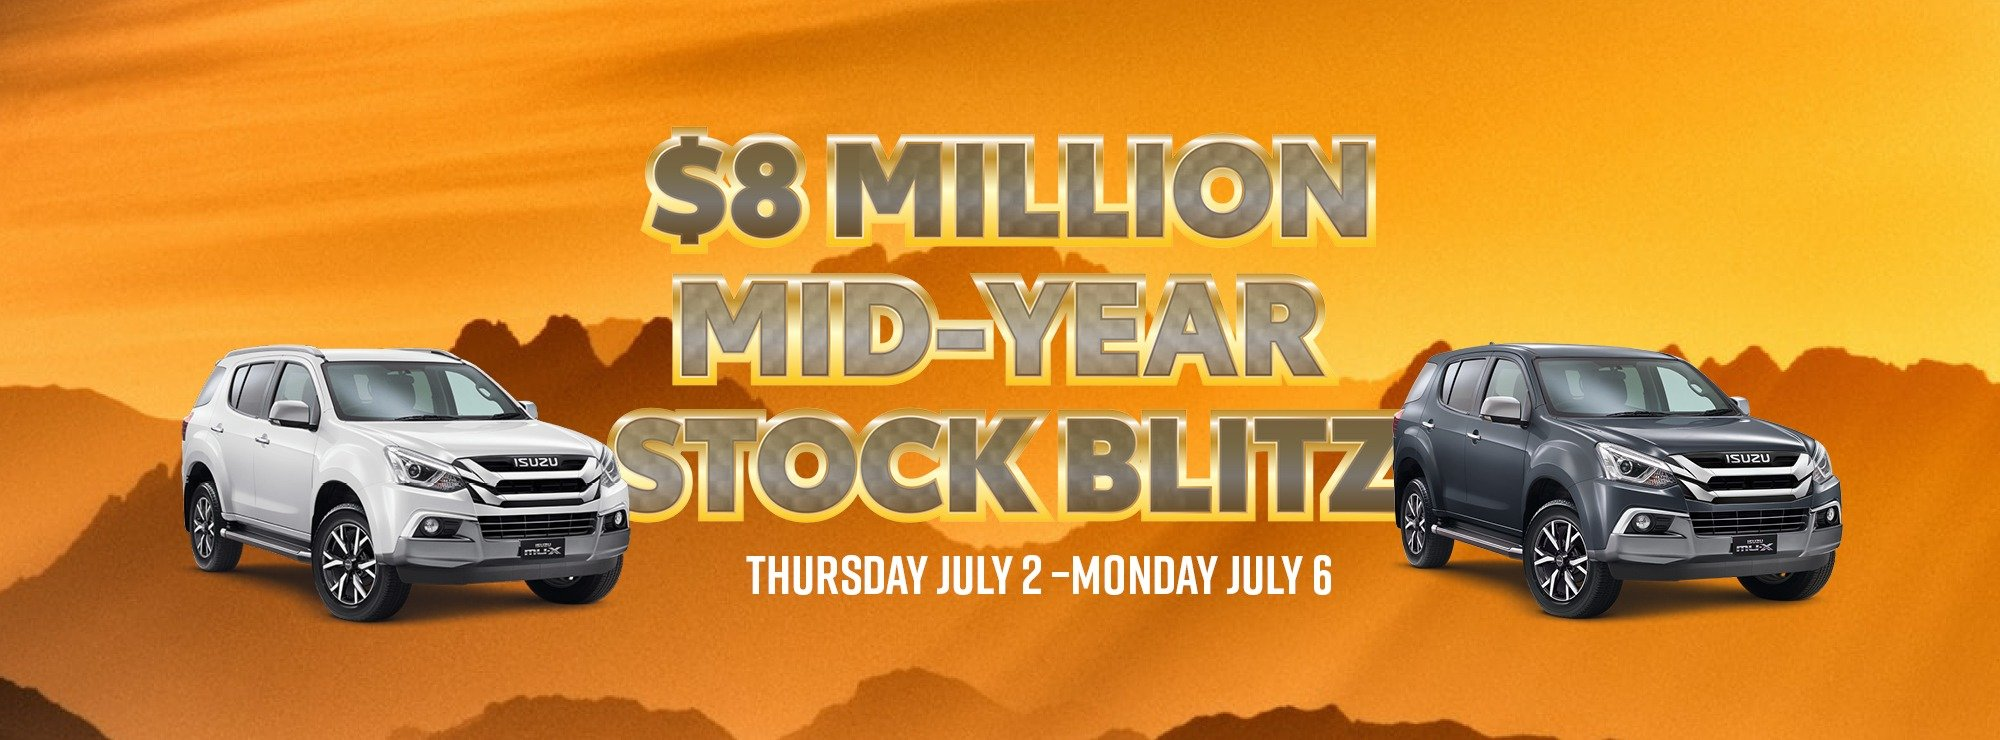 $8 million mid-year stock blitz